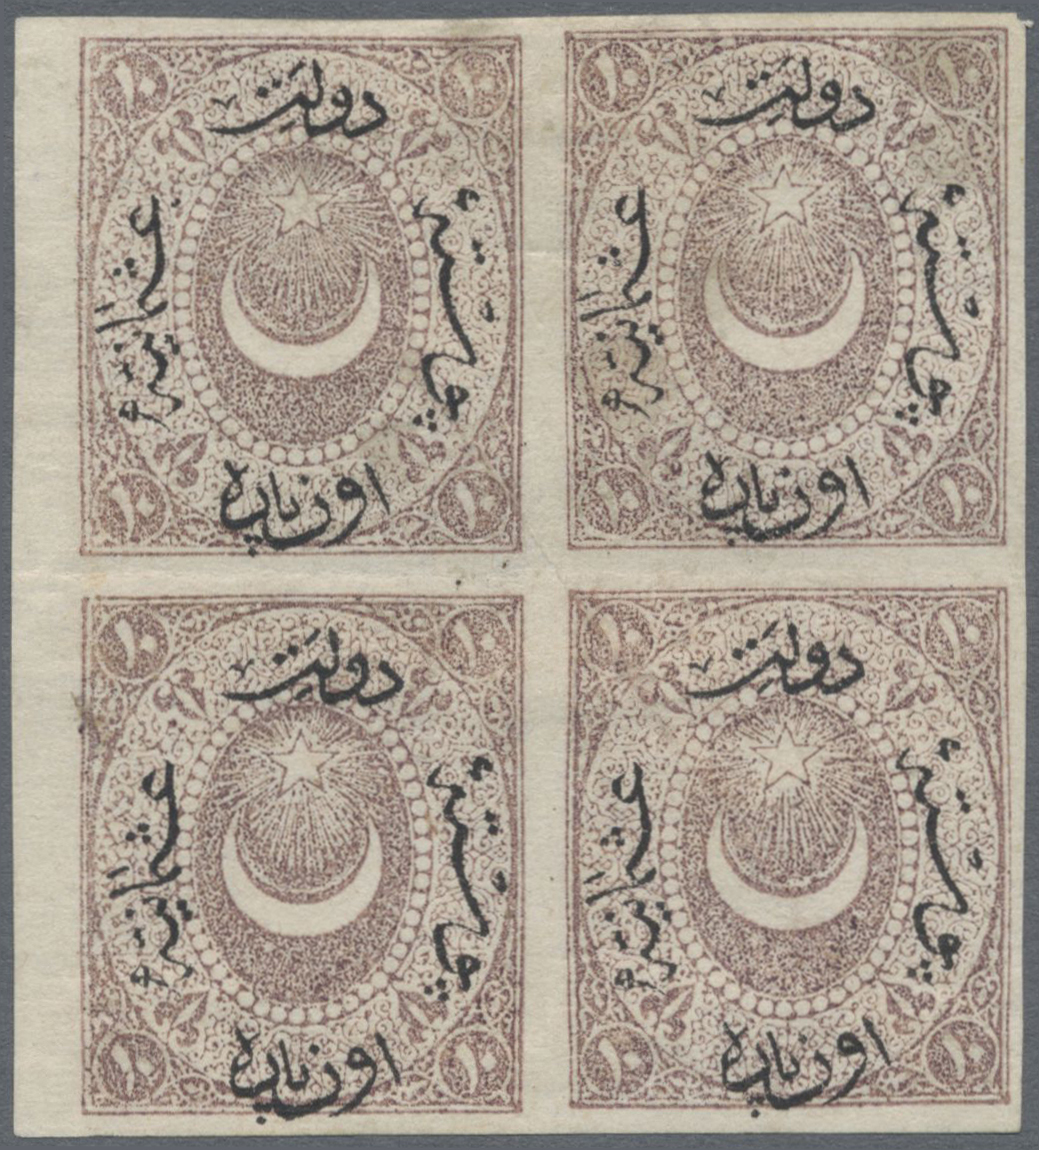 Lot 10059 - türkei  -  Auktionshaus Christoph Gärtner GmbH & Co. KG Sale #48 The Single Lots Philatelie